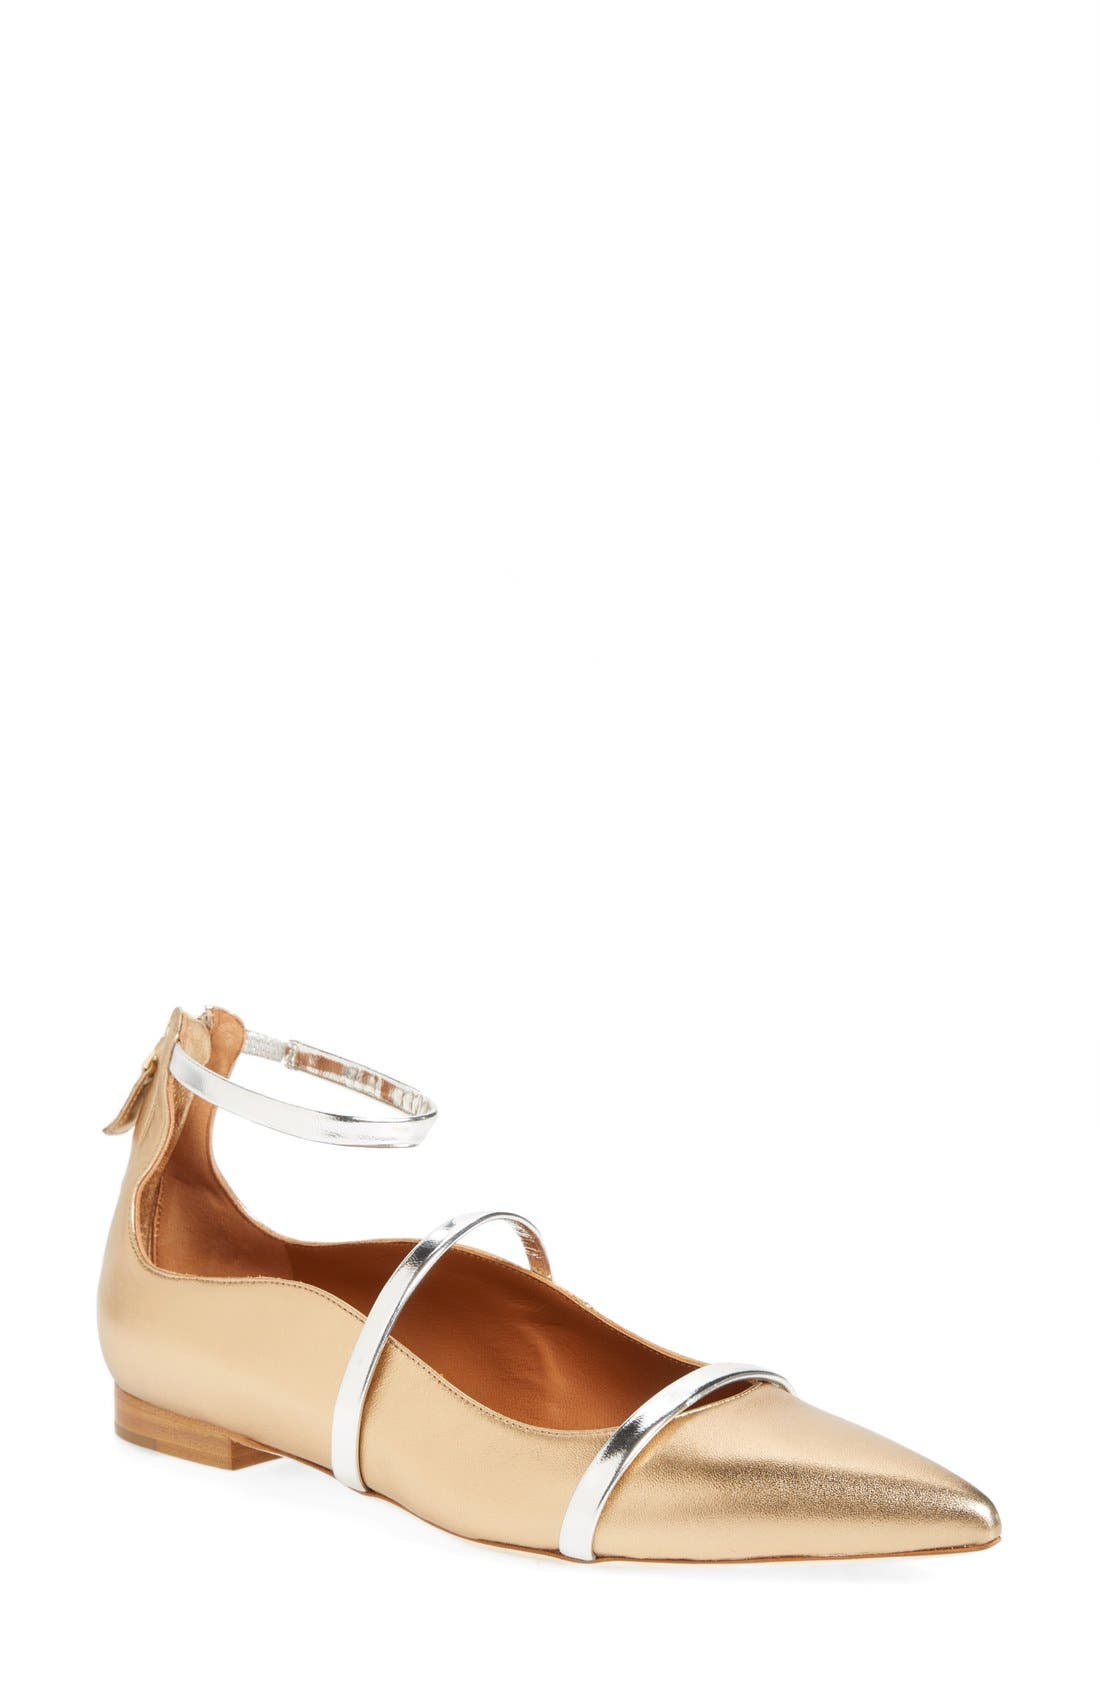 'Robyn' Ankle Strap Flat, Main, color, 710